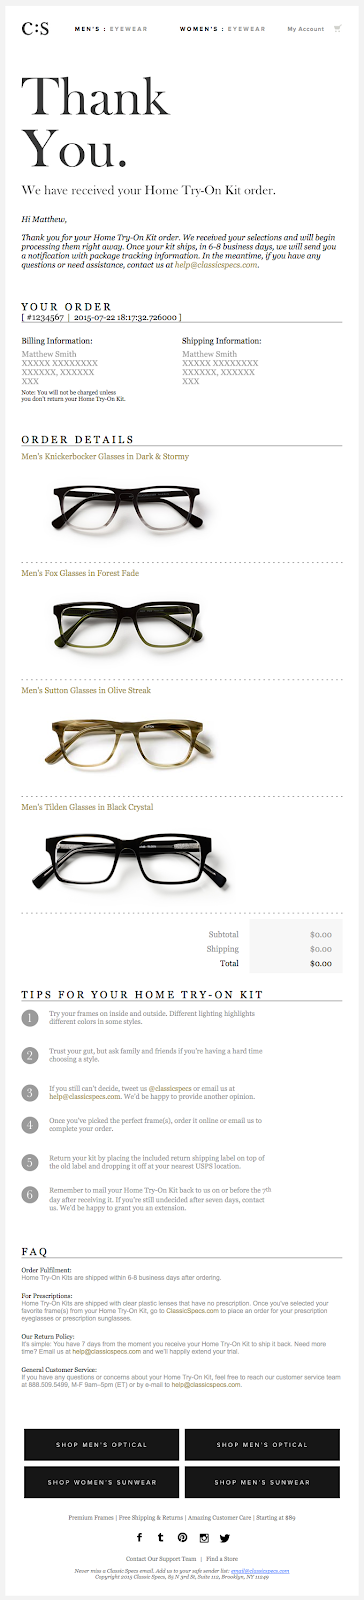 Classic Specs email example